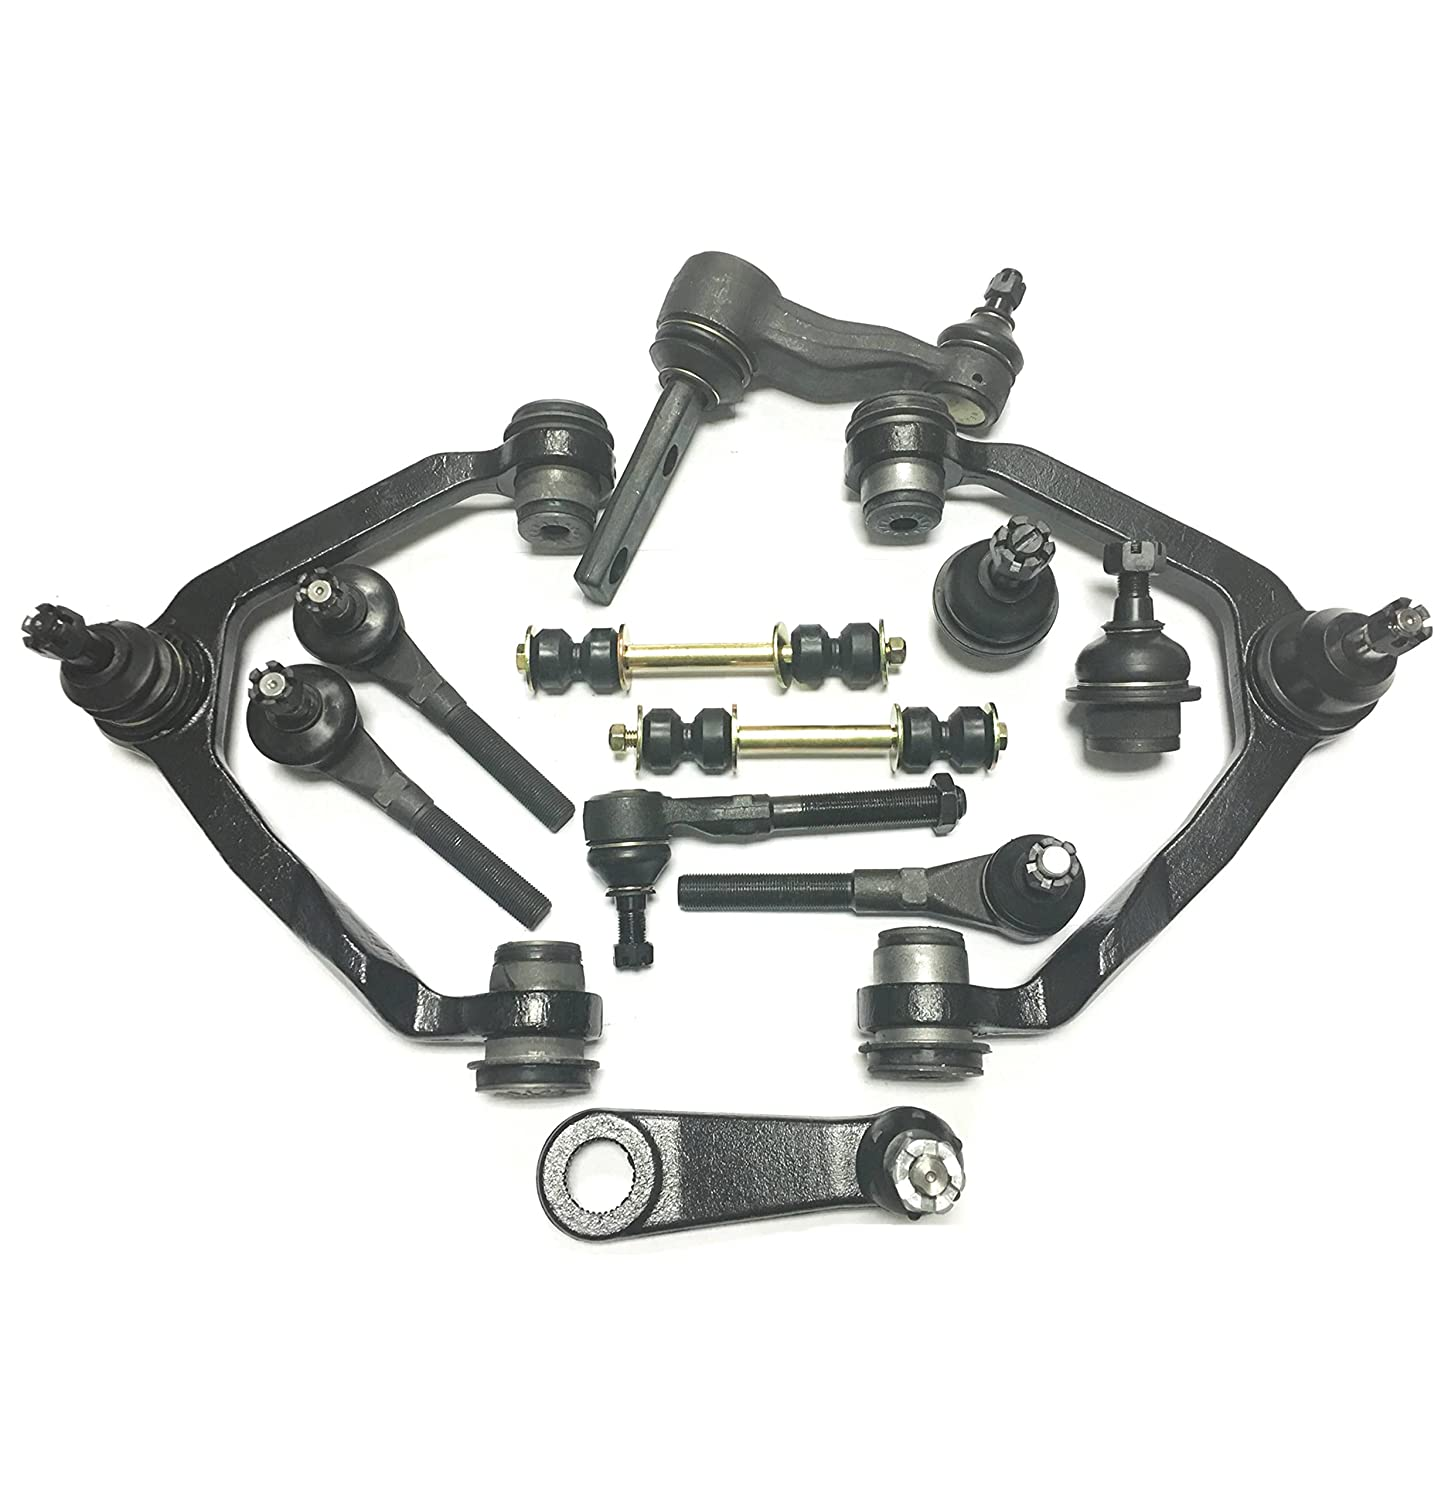 Amazon.com: PartsW 12 Pc Suspension Kit For Ford F-150, Expedition, F-250 &  Lincoln Blackwood Navigator 2 Lower Ball Joints 2 Upper Control Arm with 2  BALL ...